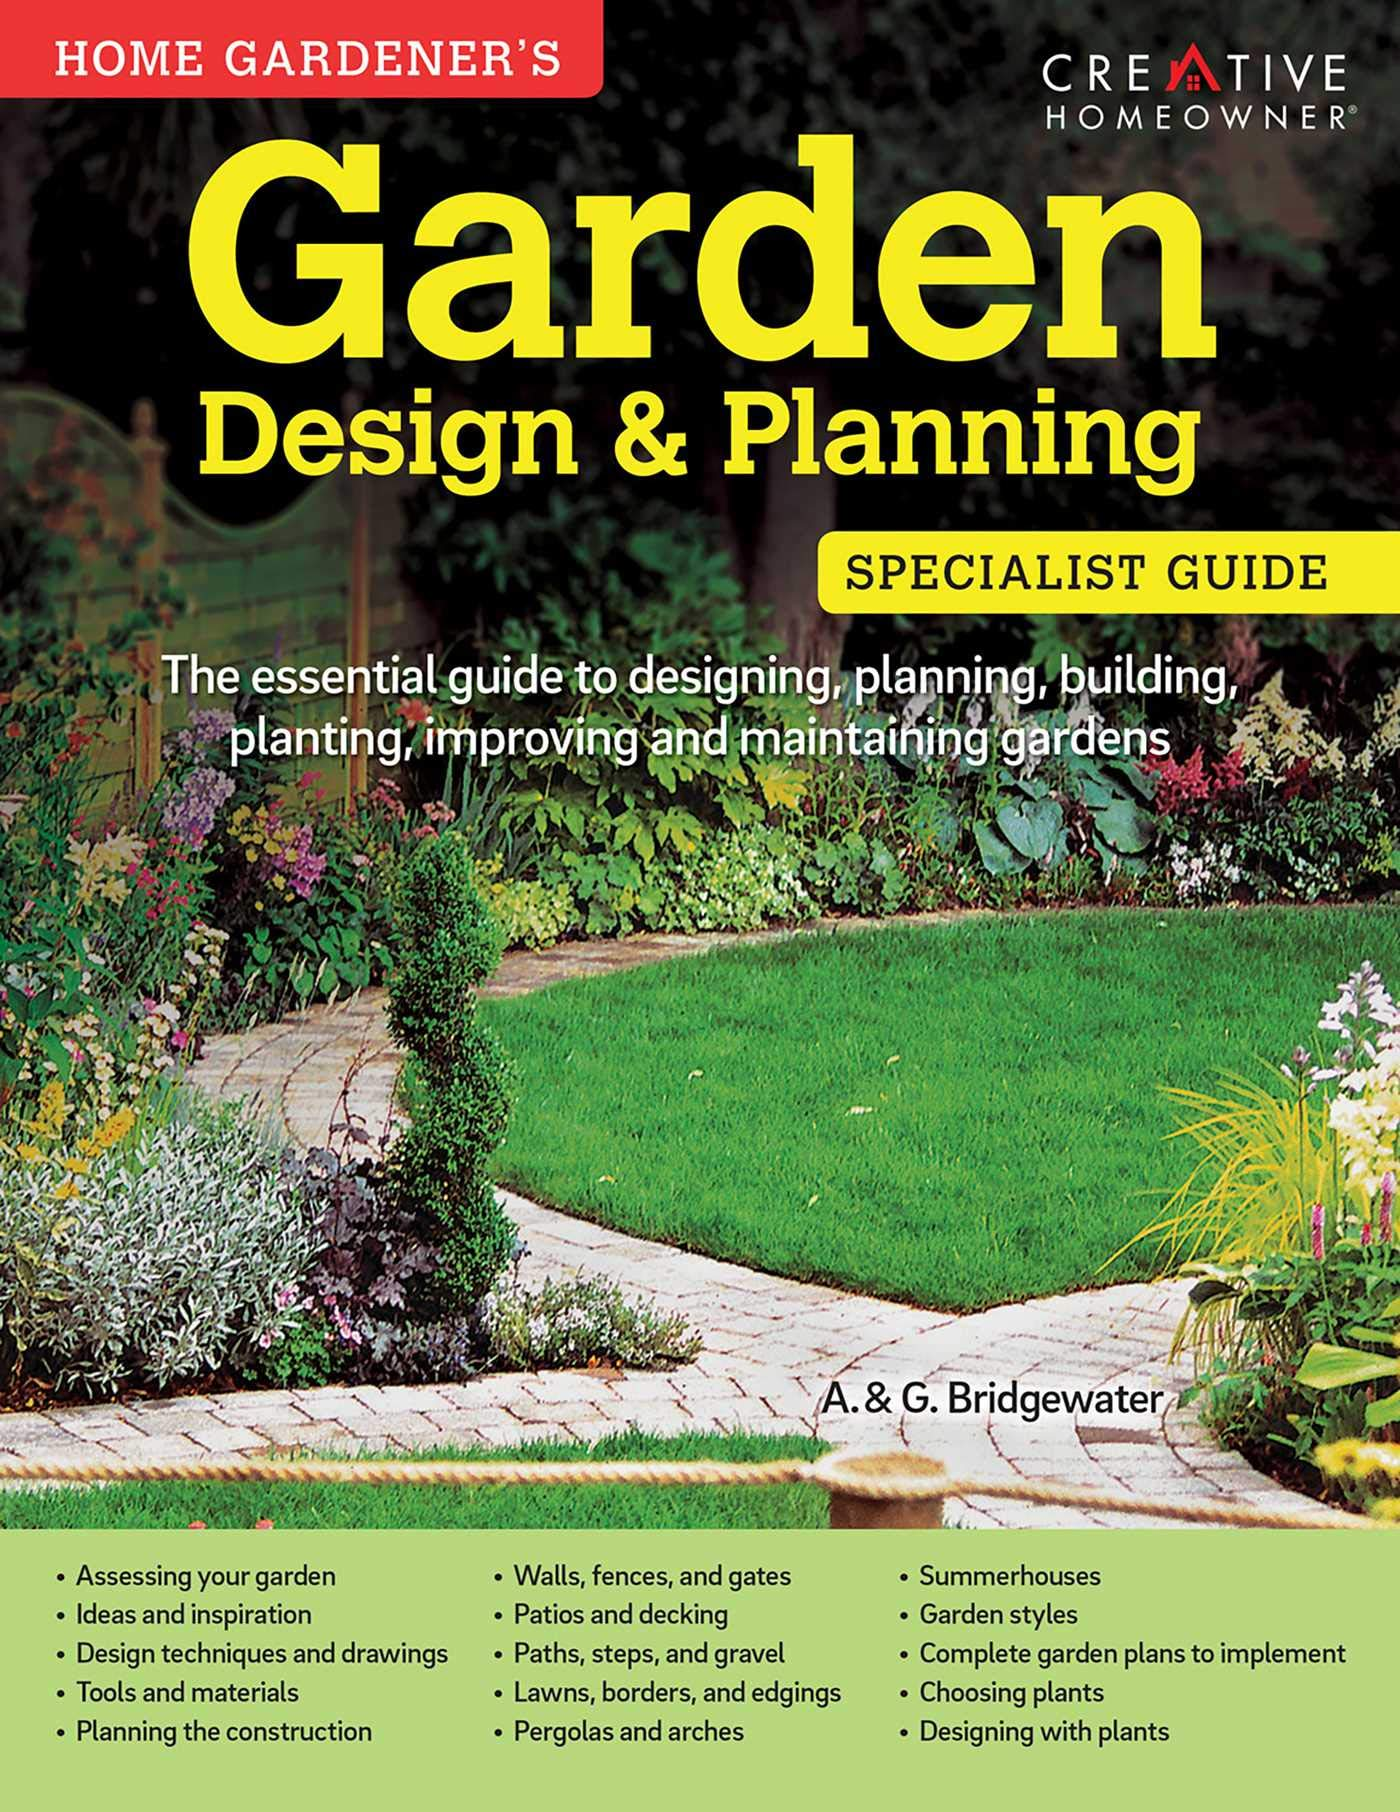 Choice National Home Gardening Club Hardcover Books Color Ideas Techniques Photos